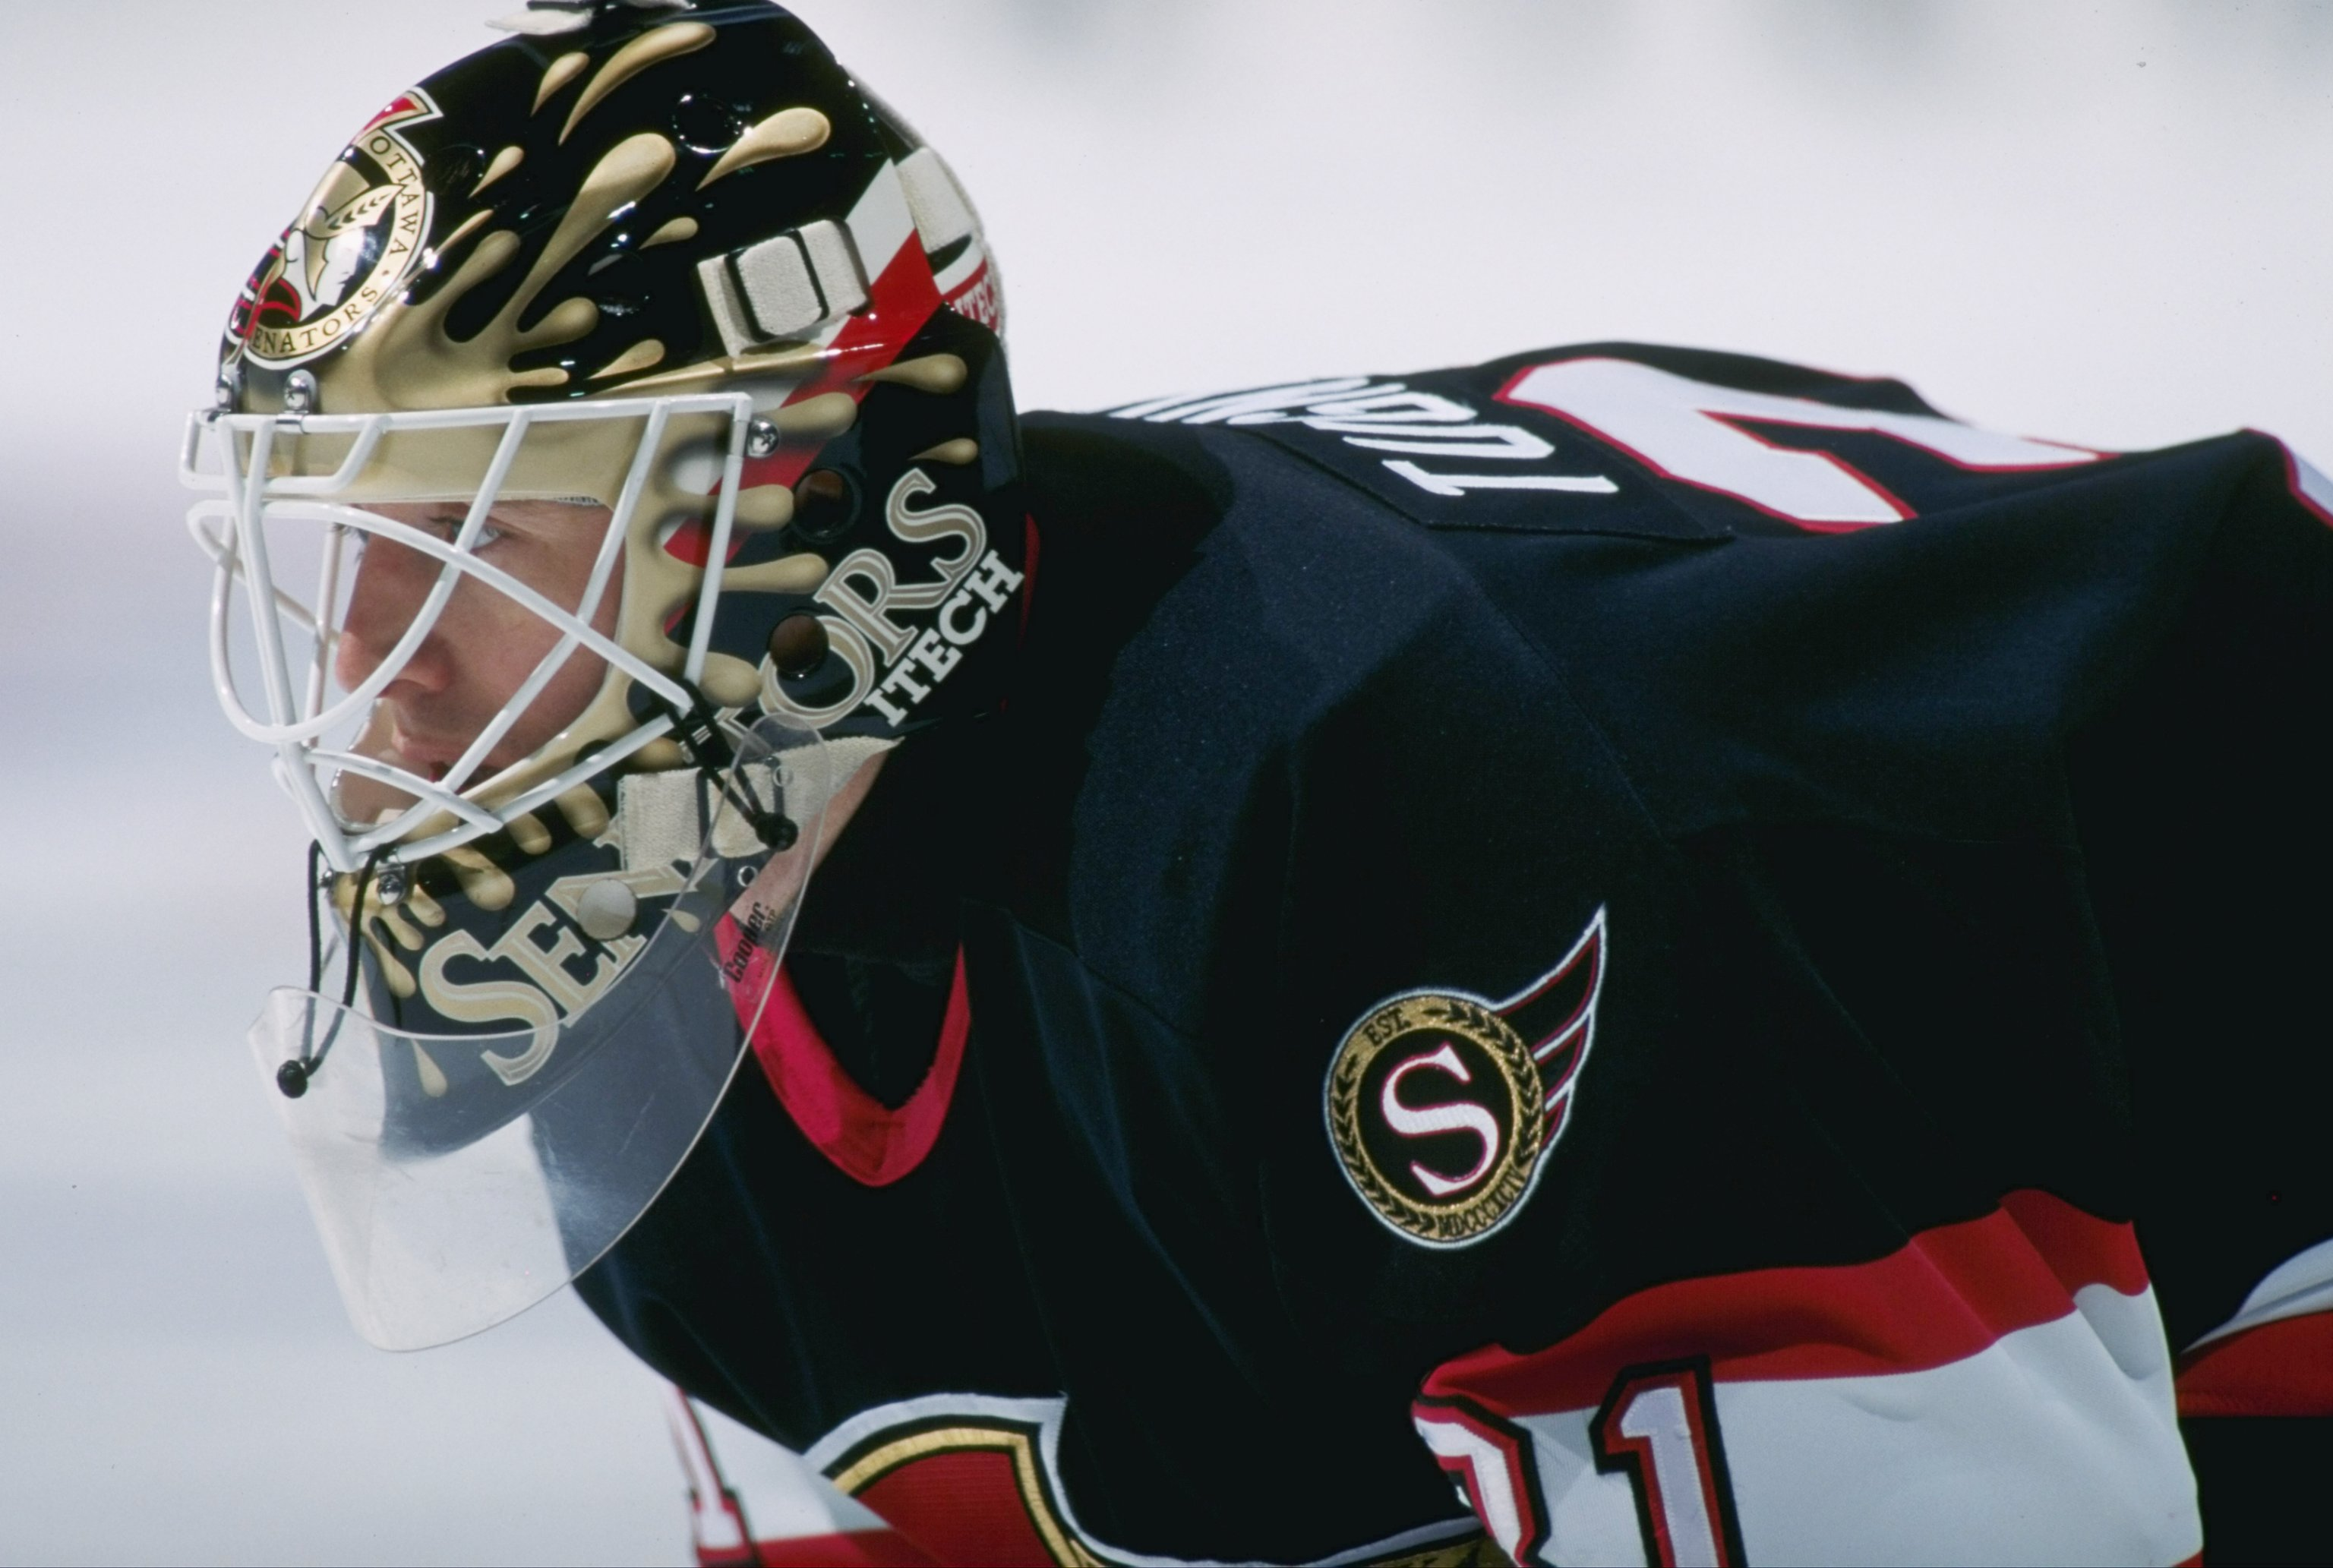 15 Mar 1997: Goaltender Ron Tugnutt of the Ottawa Senators looks on during a game against the Montreal Canadiens at The Forum in Montreal, Quebec. The game was a tie, 2-2.